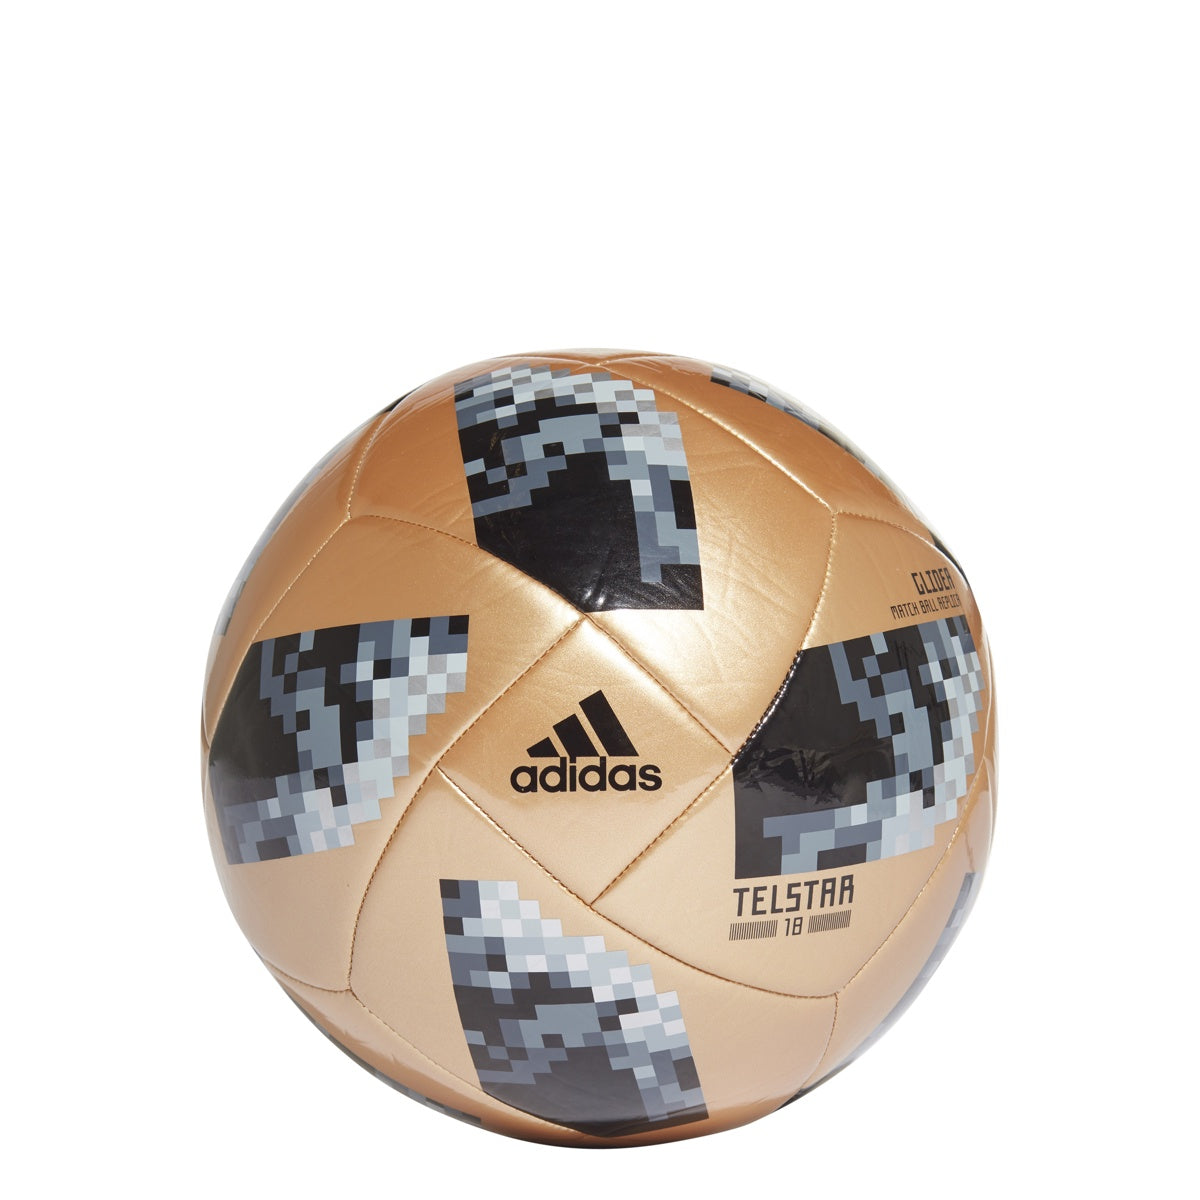 Adidas World Cup Glide Ball Gold/Gray